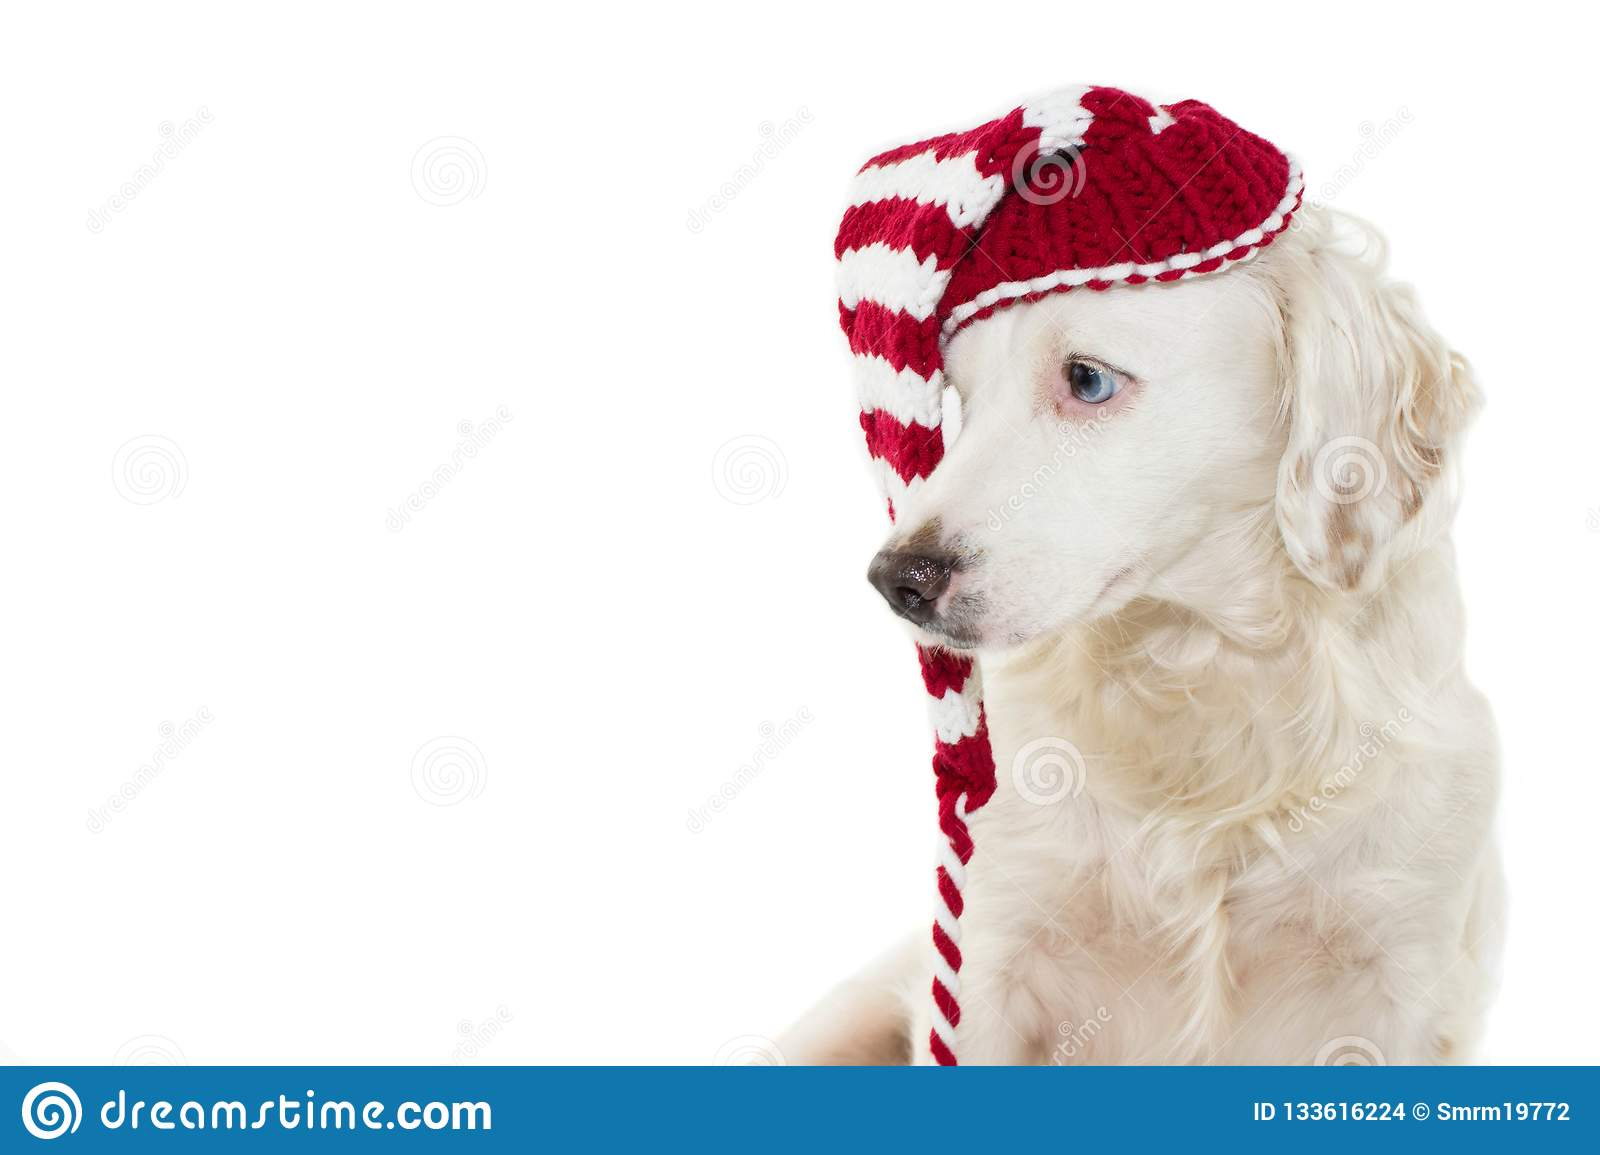 CHRISTMAS DOG BANNER. CUTE PUPPY WITH BLUE EYES WEARING A STRIPE